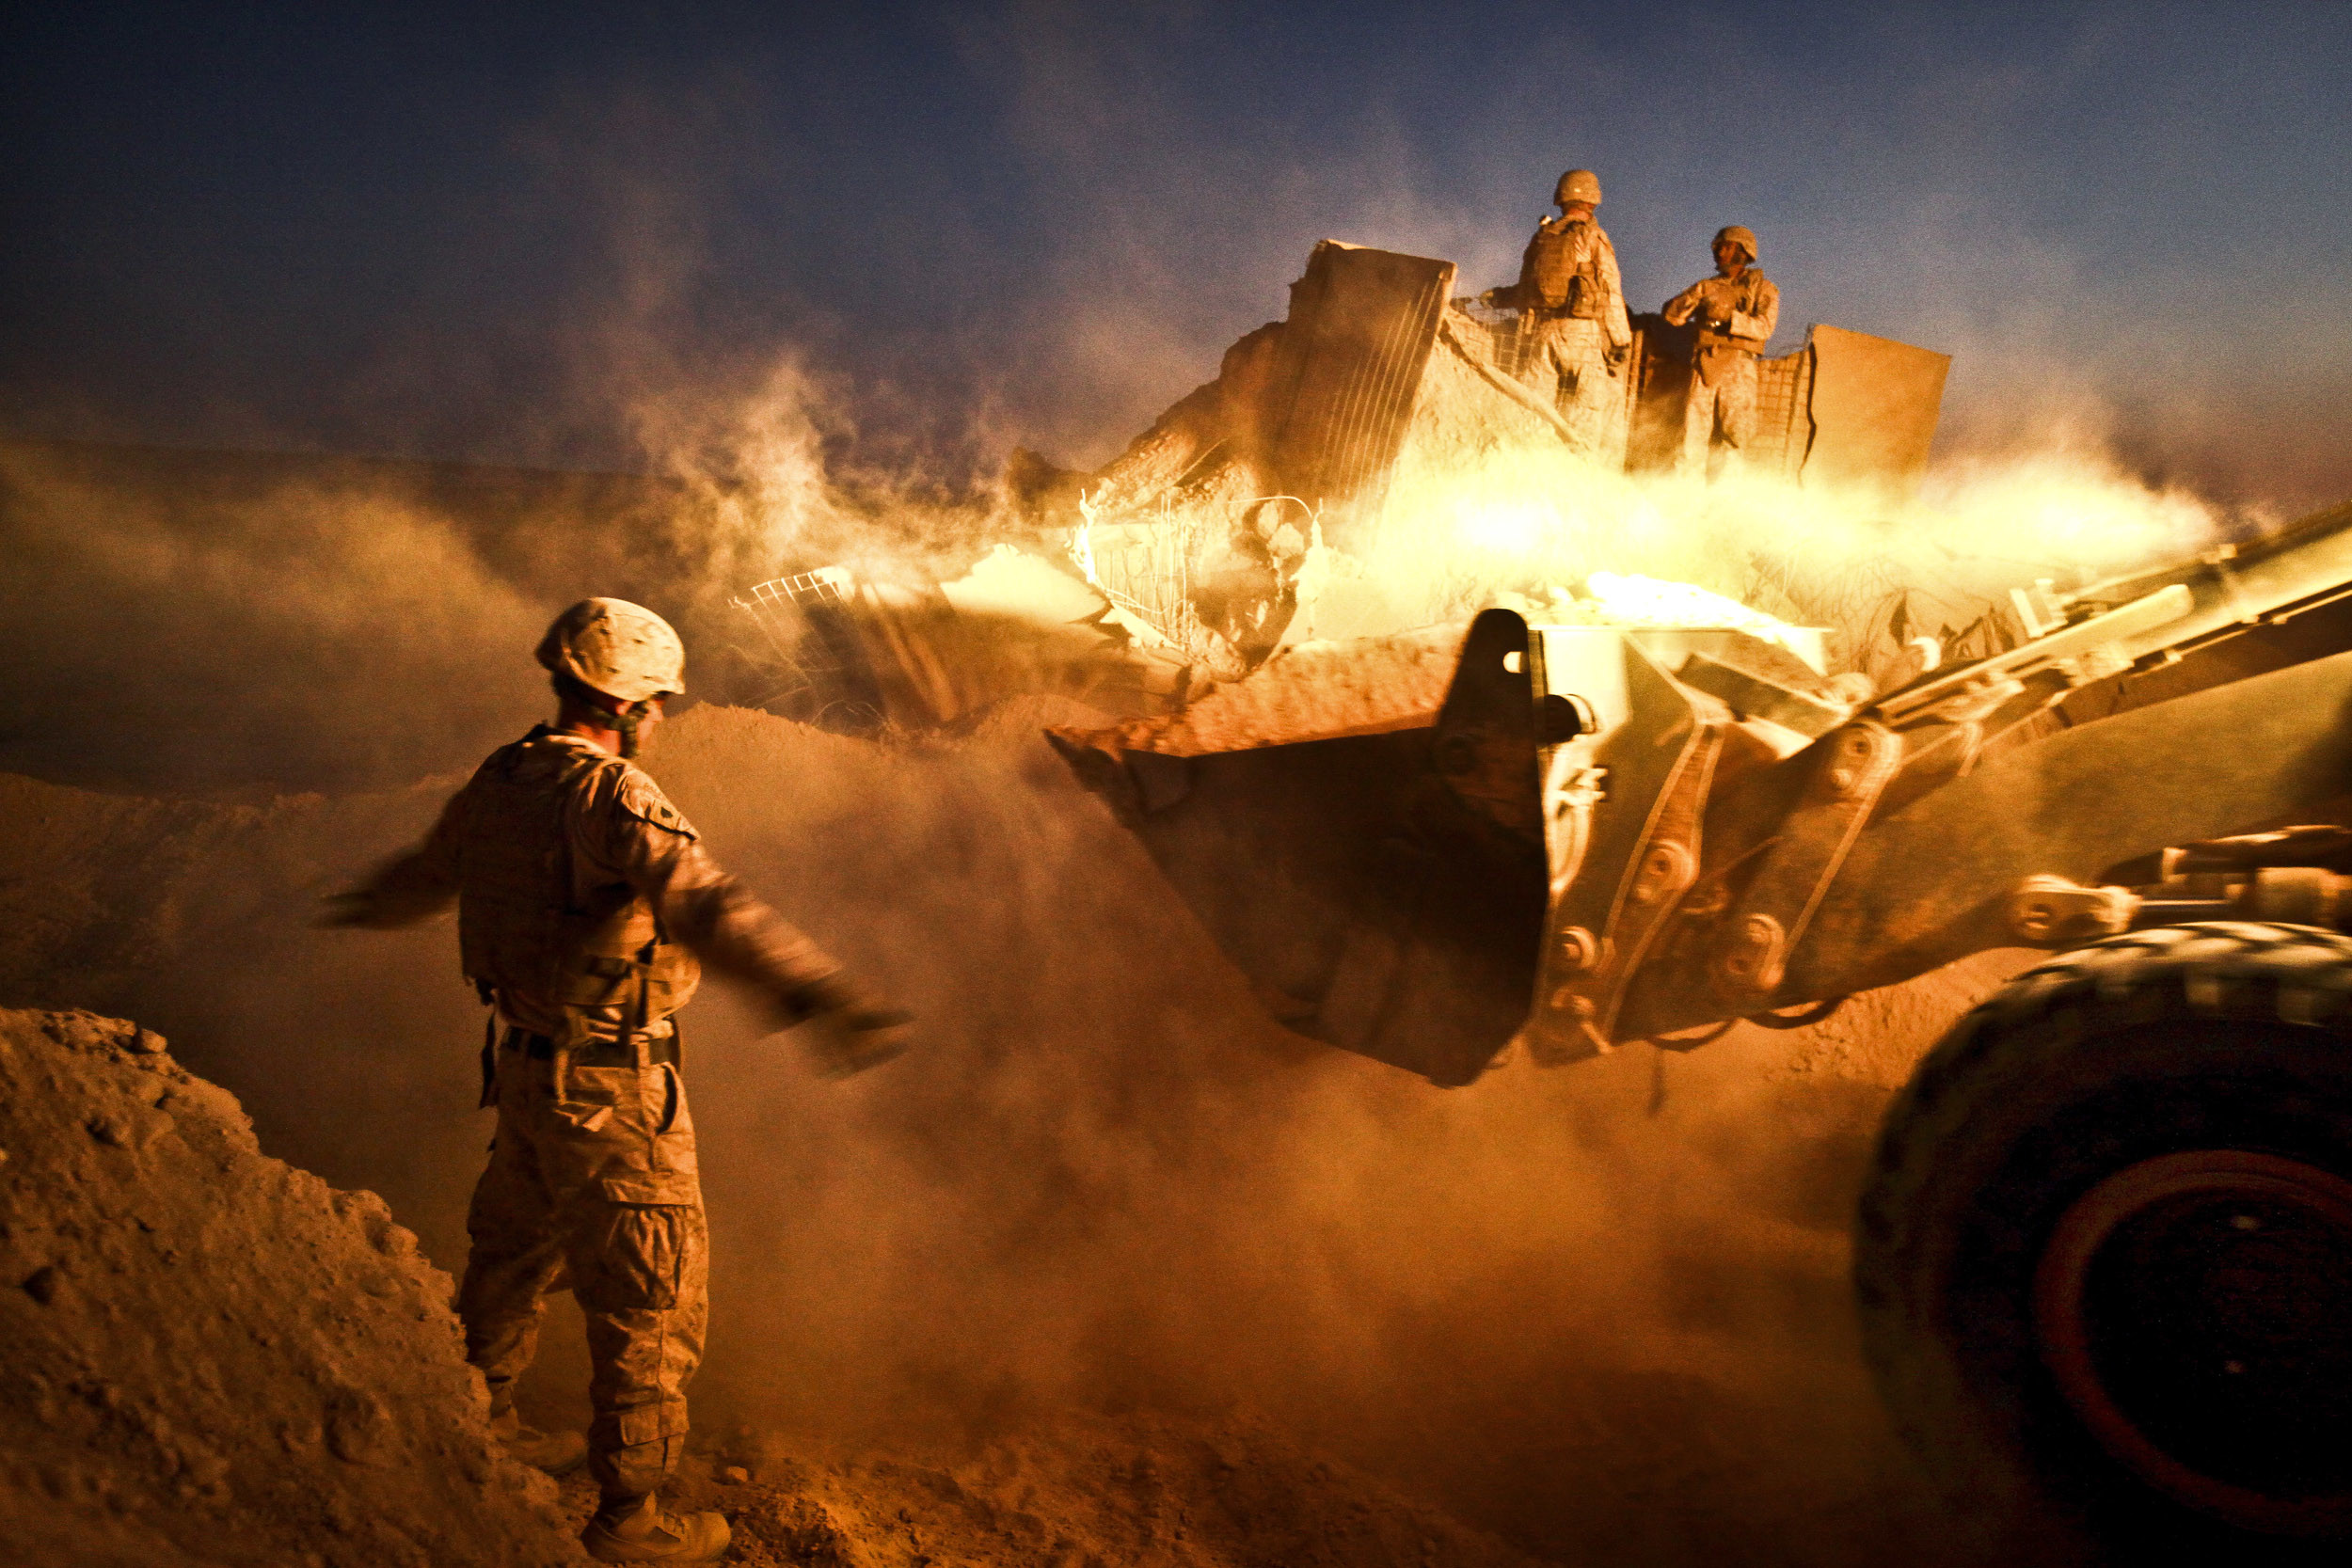 U.S. Marine Corps Sgt. Cody Palfreyman guides a bulldozer as it moves the  berm surrounding